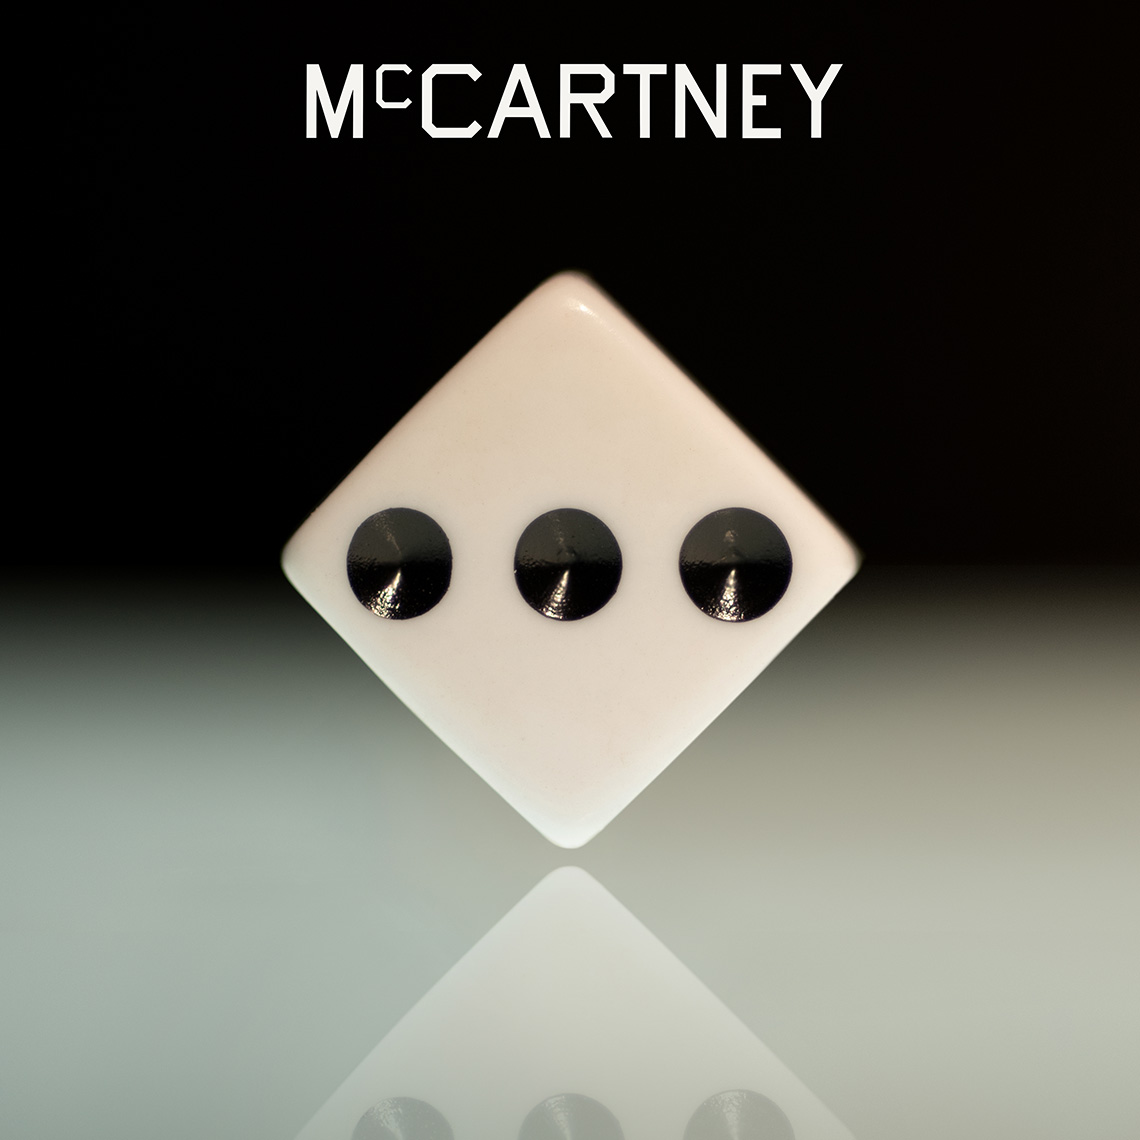 The album cover art for McCartney III, a rendering of a die balanced on one point with three dots facing the viewer